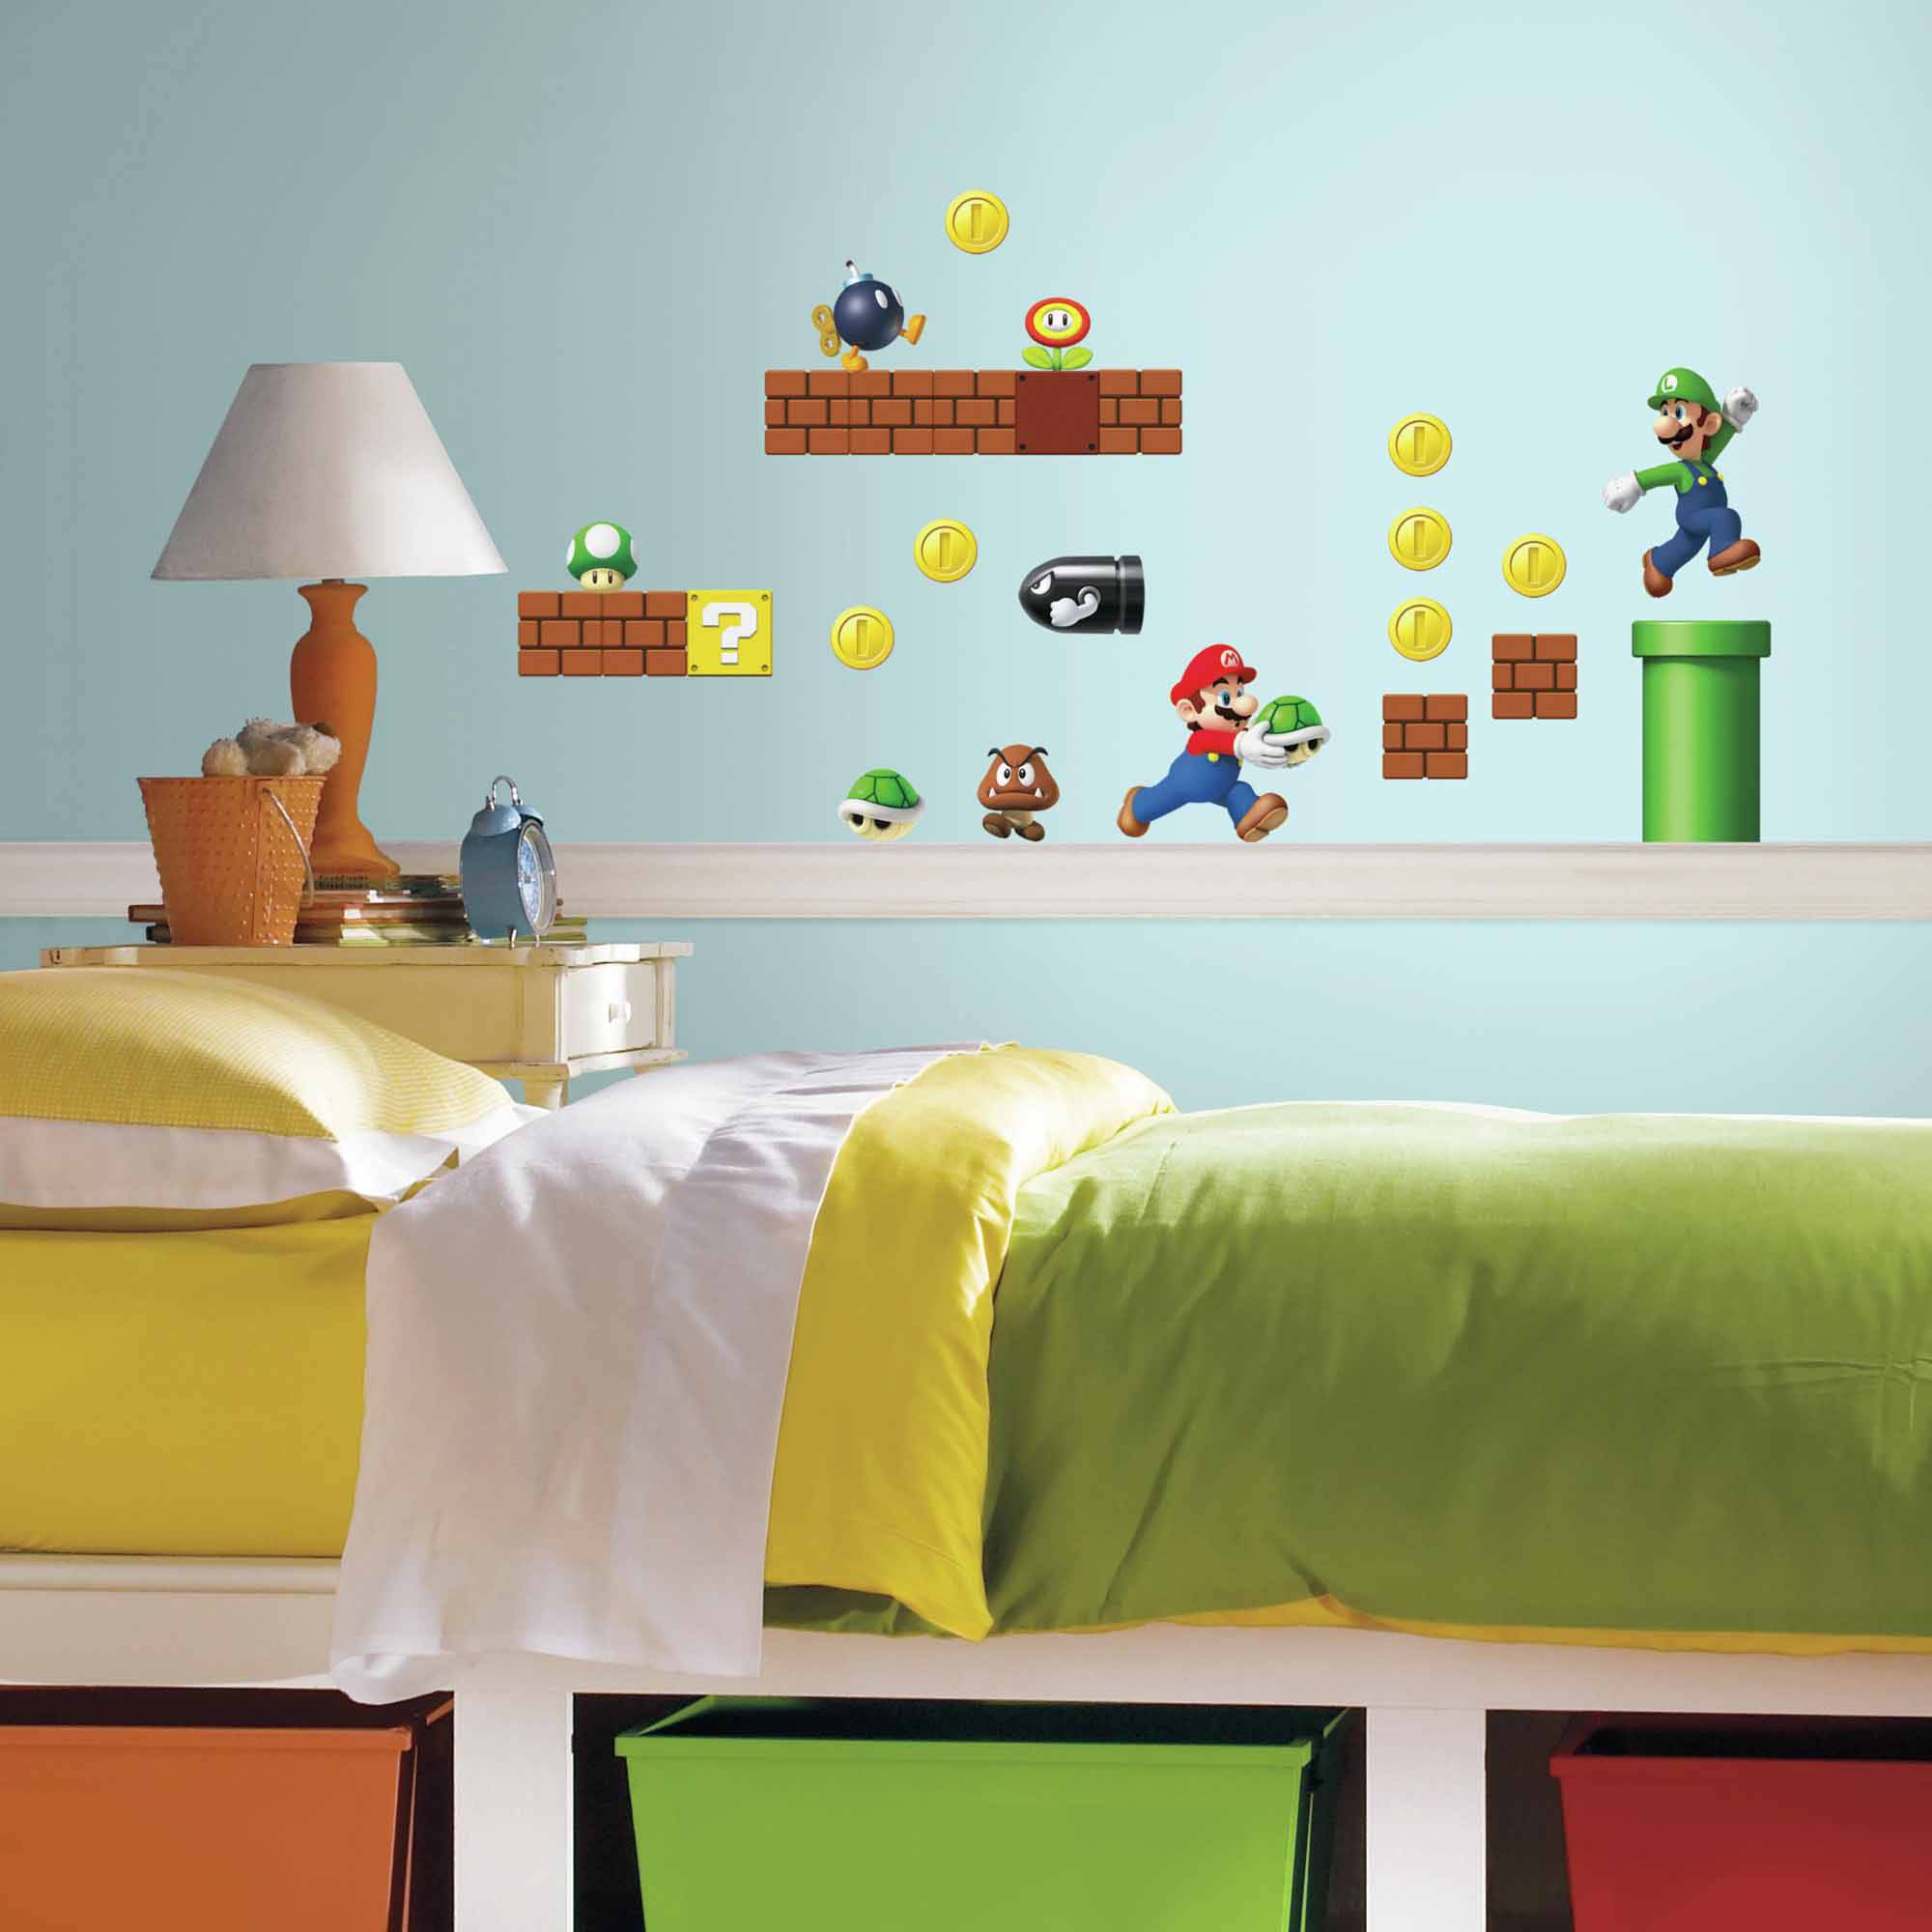 Nintendo super mario build a scene peel and stick wall decals nintendo super mario build a scene peel and stick wall decals walmart amipublicfo Gallery